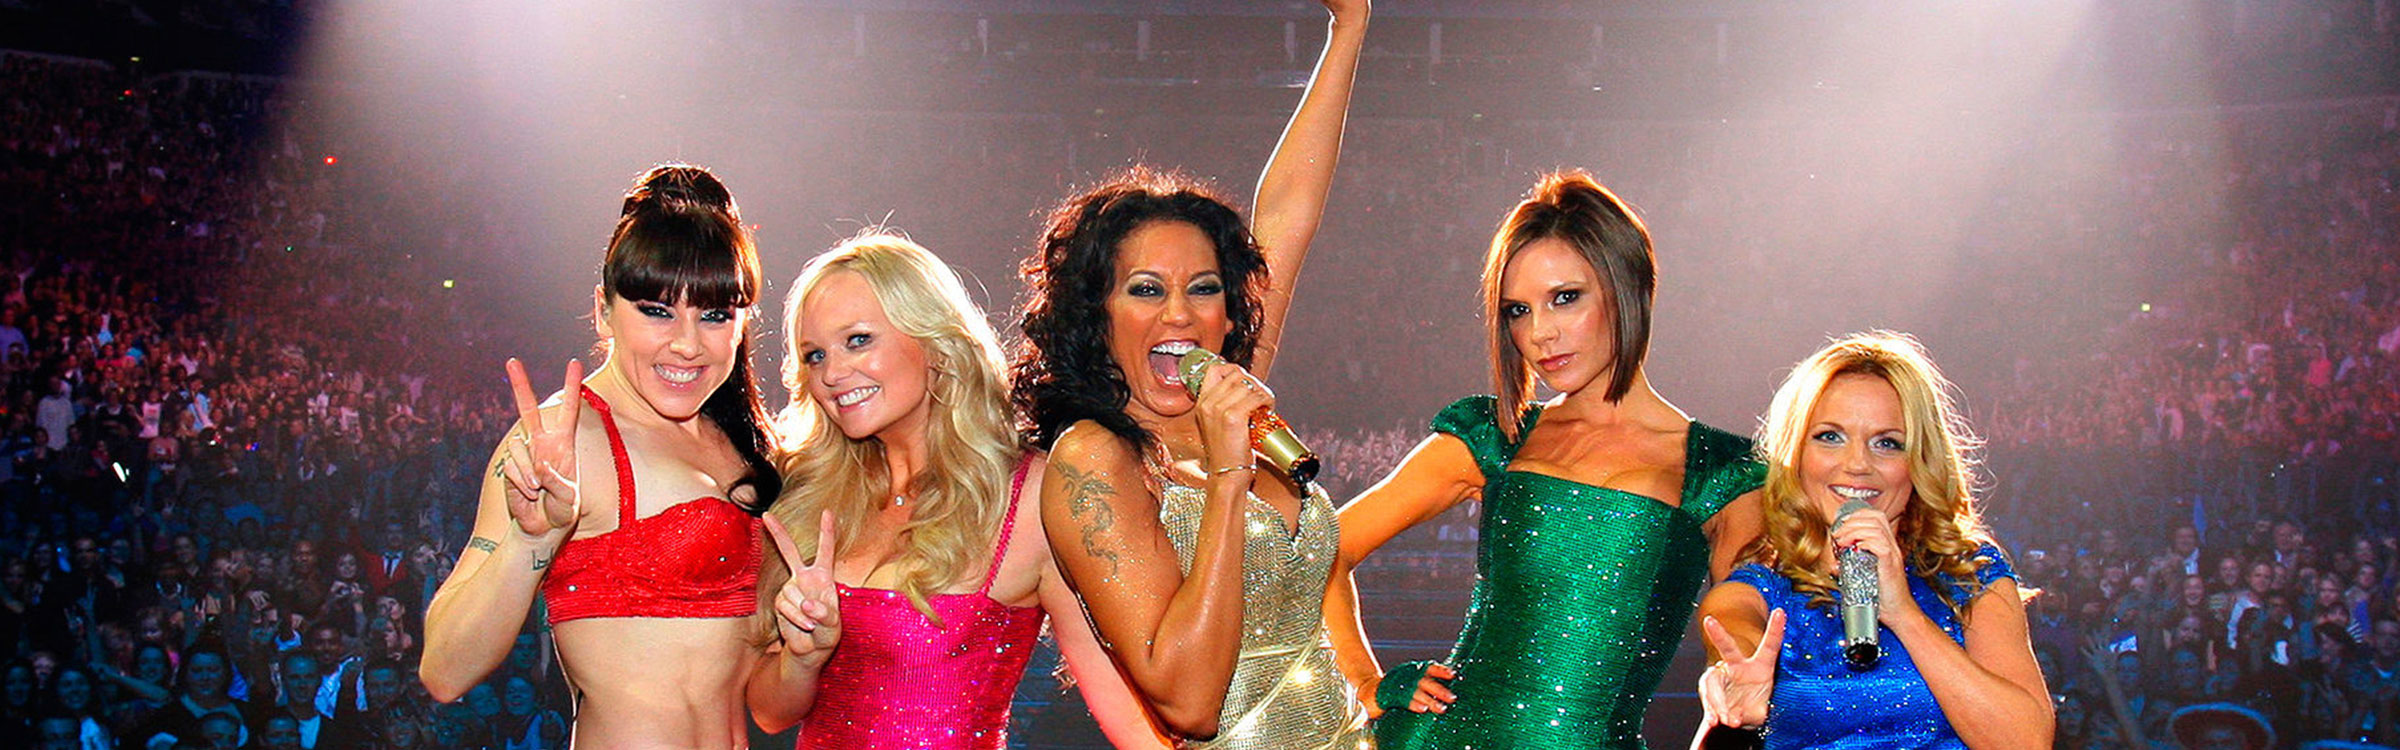 Spice girls header